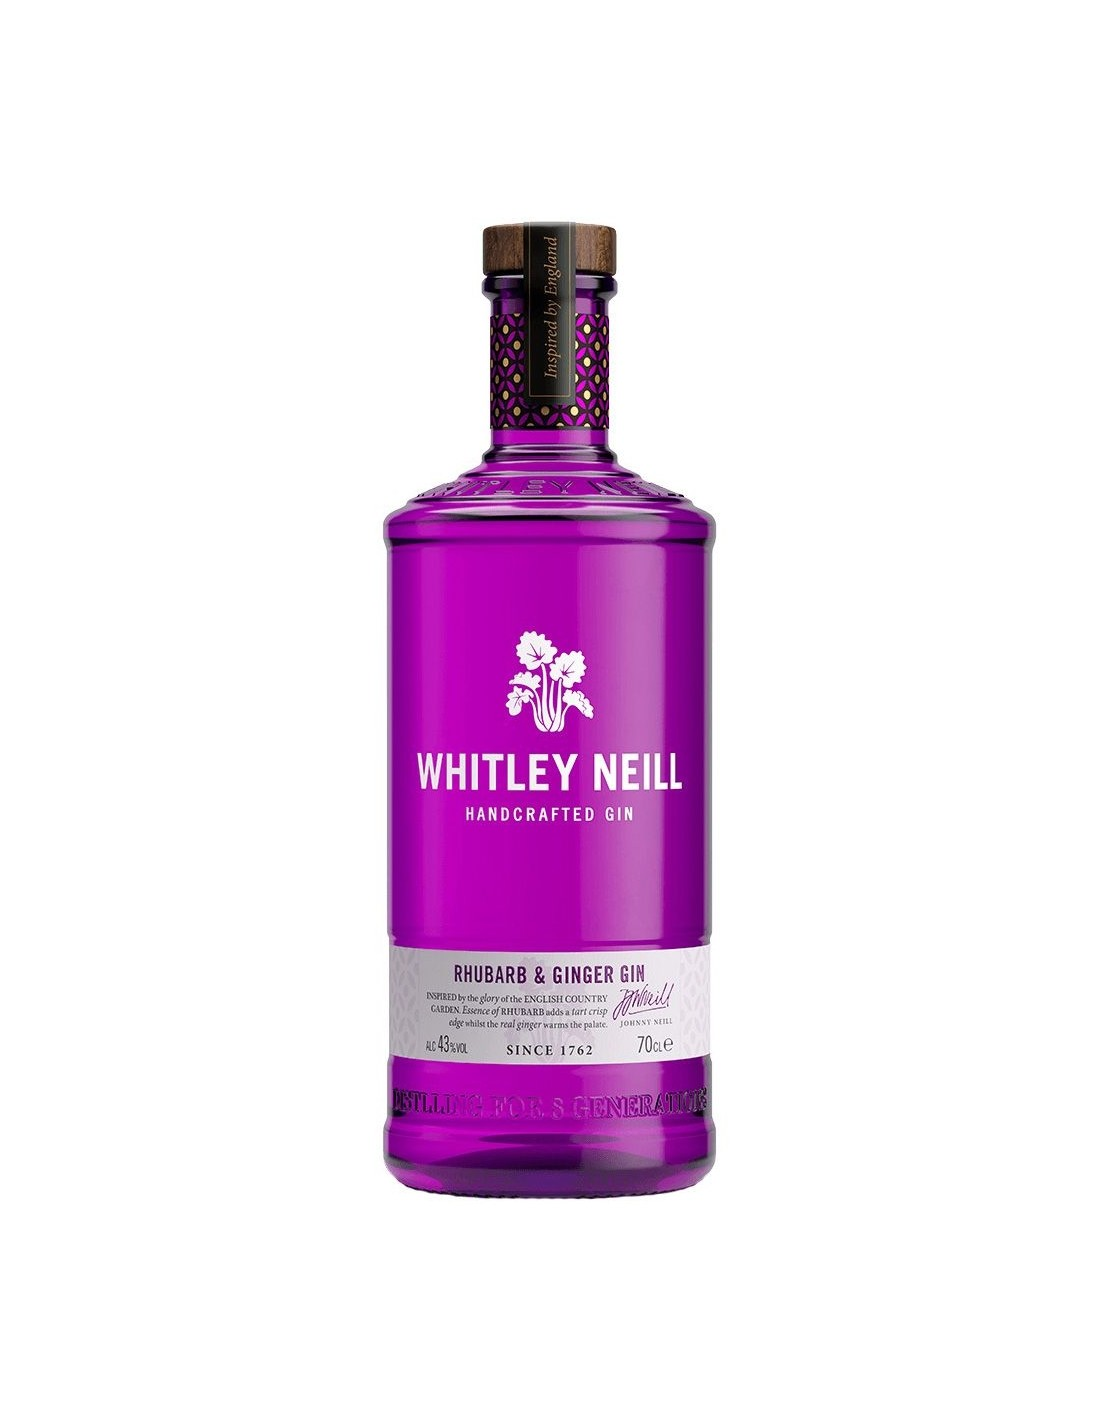 Gin Whitley Neill Rhubarb&Ginger 43% alc., 0.7L